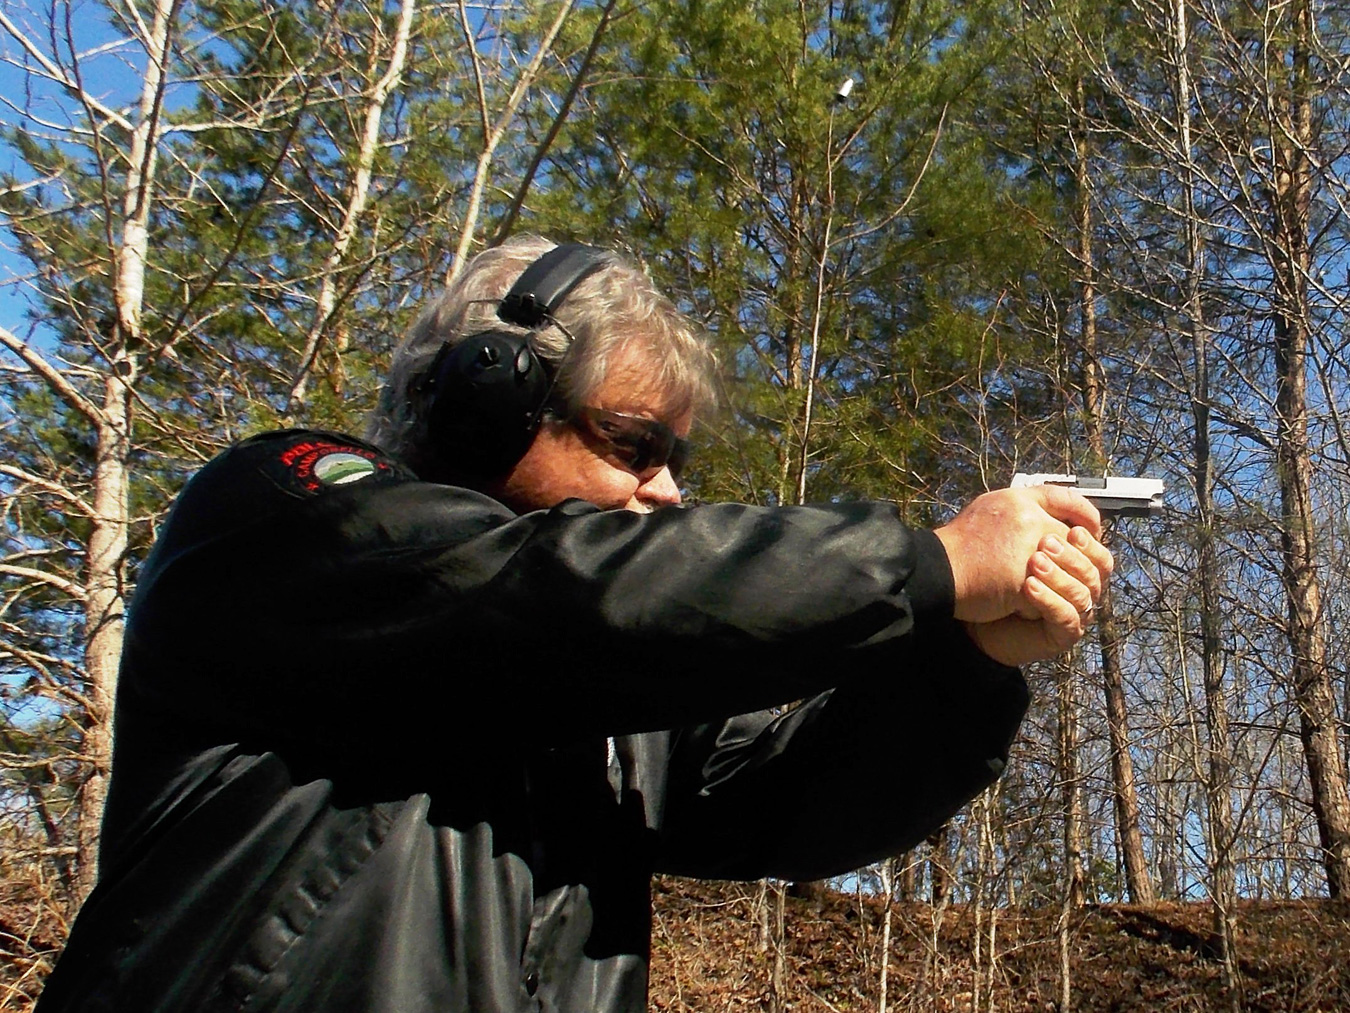 bob Campbell shooting the Springfield 911 .380 ACP pistol